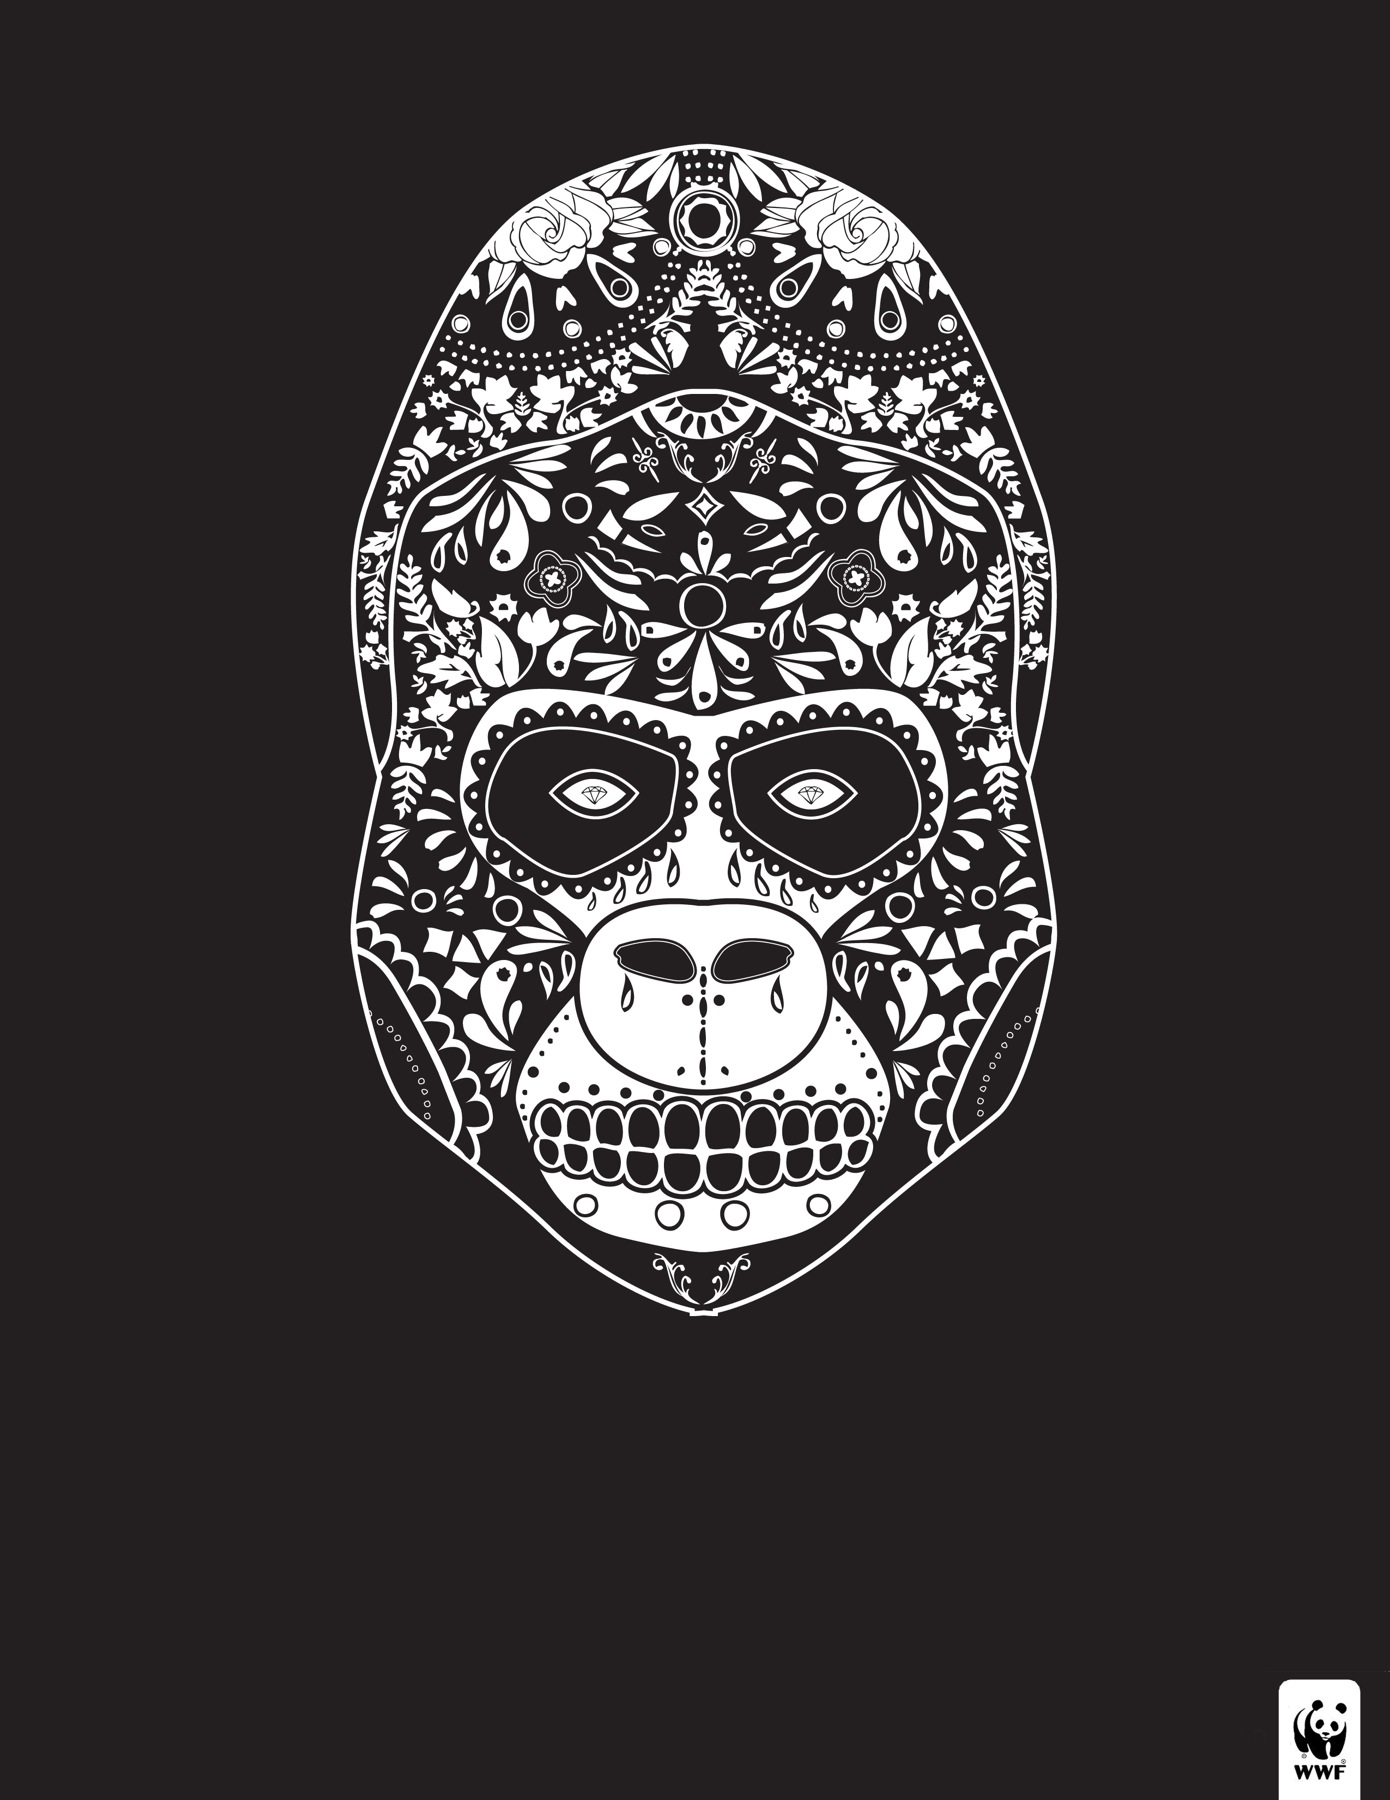 WWF: Day of the Dead